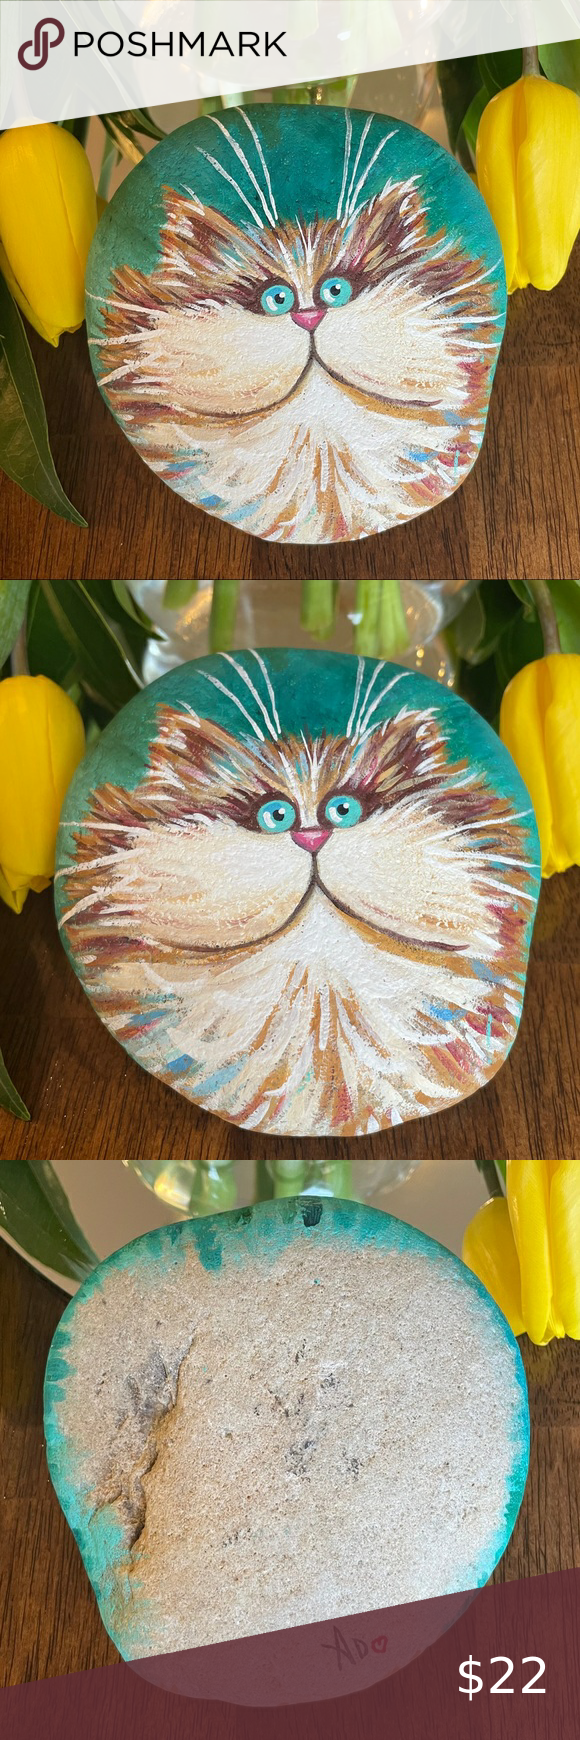 Hand-painted Cat Rock